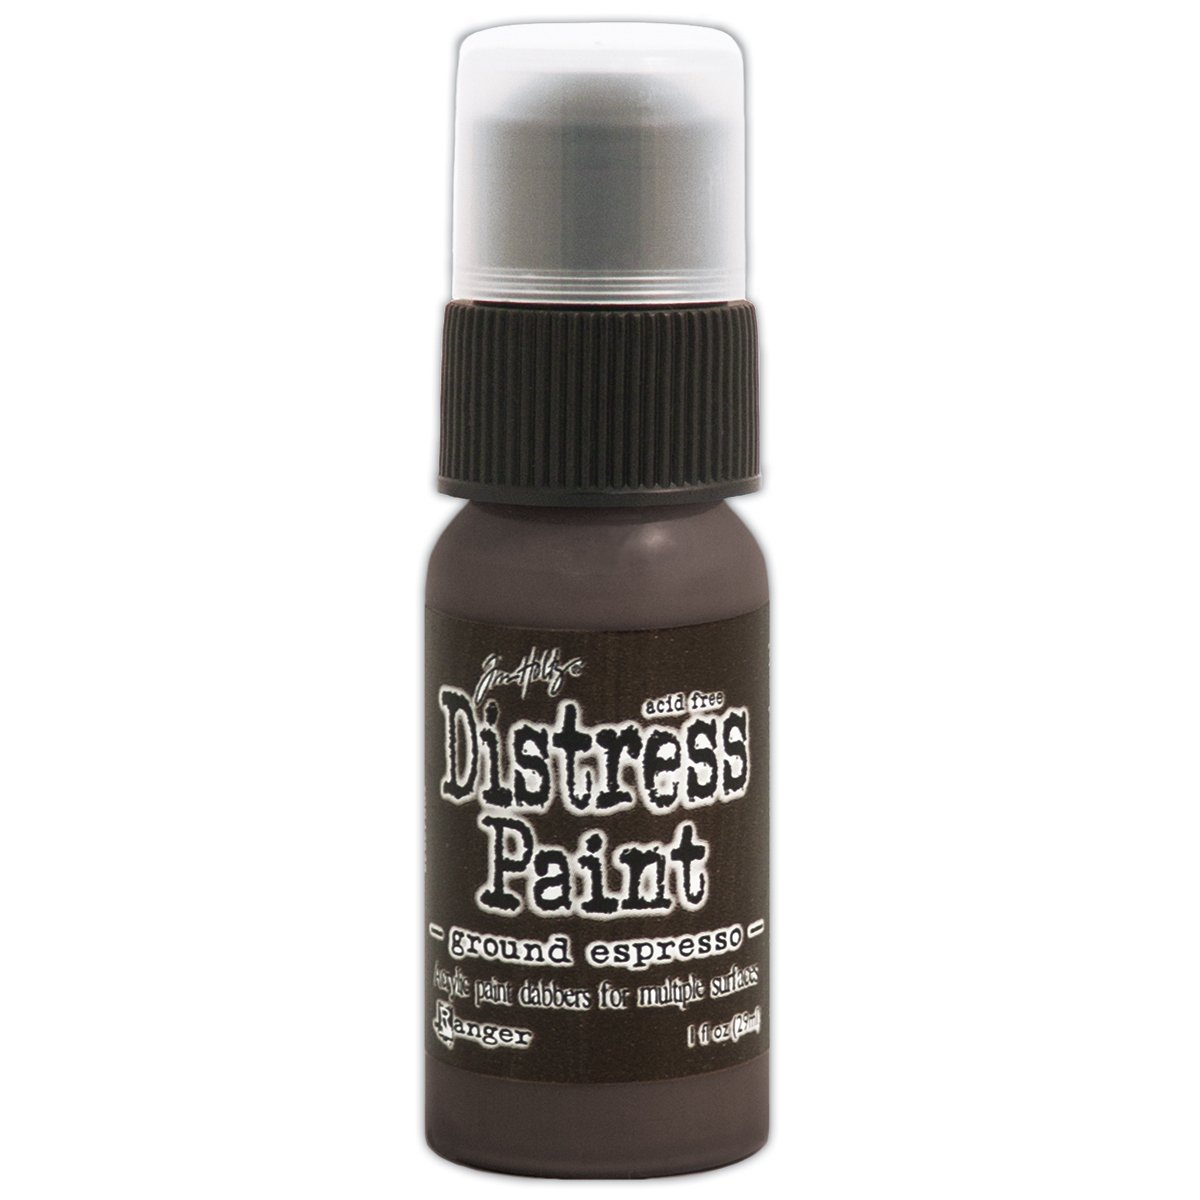 Ranger-Tampone colorato Distress 1 oz-Ground Espresso, altri Notions Marketing TDD-43638